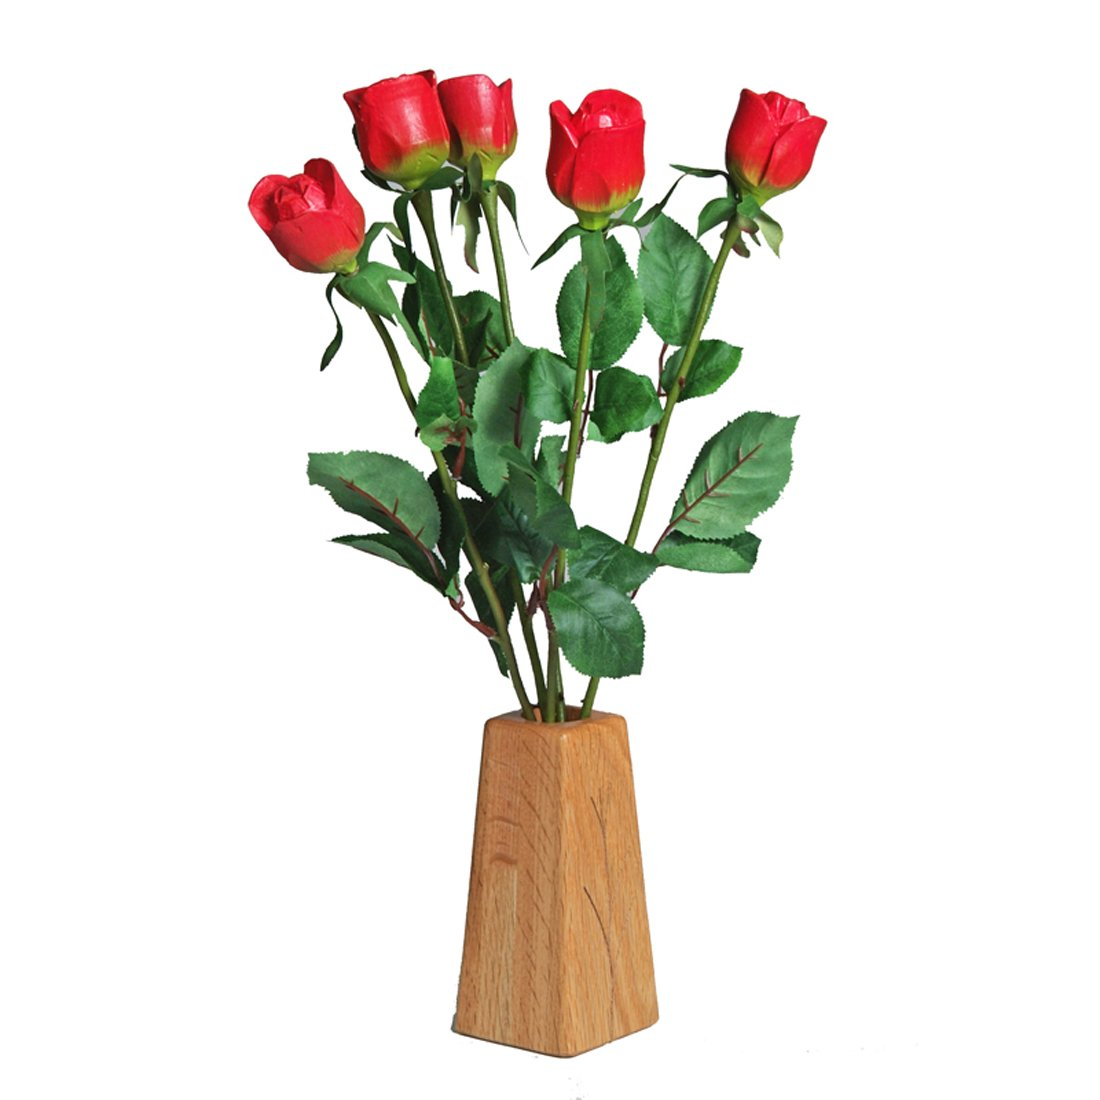 JustPaperRoses ® Wood Roses 5th Wedding Anniversary Gift, 5-Stem Bouquet and Wood Vase, Just Paper Roses –